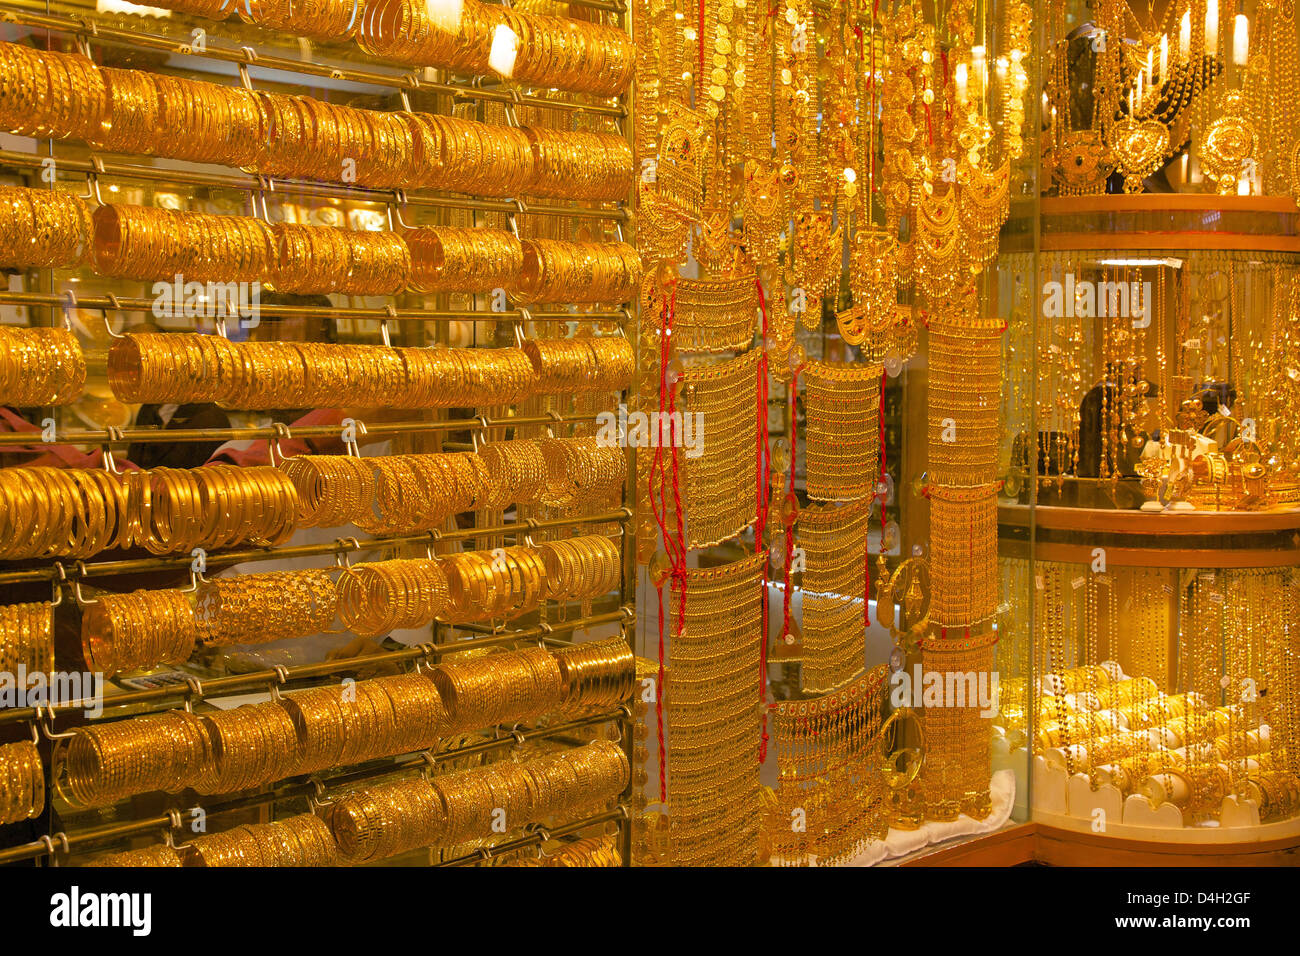 gold in emirates united photo stock a dubai bangles arab souk